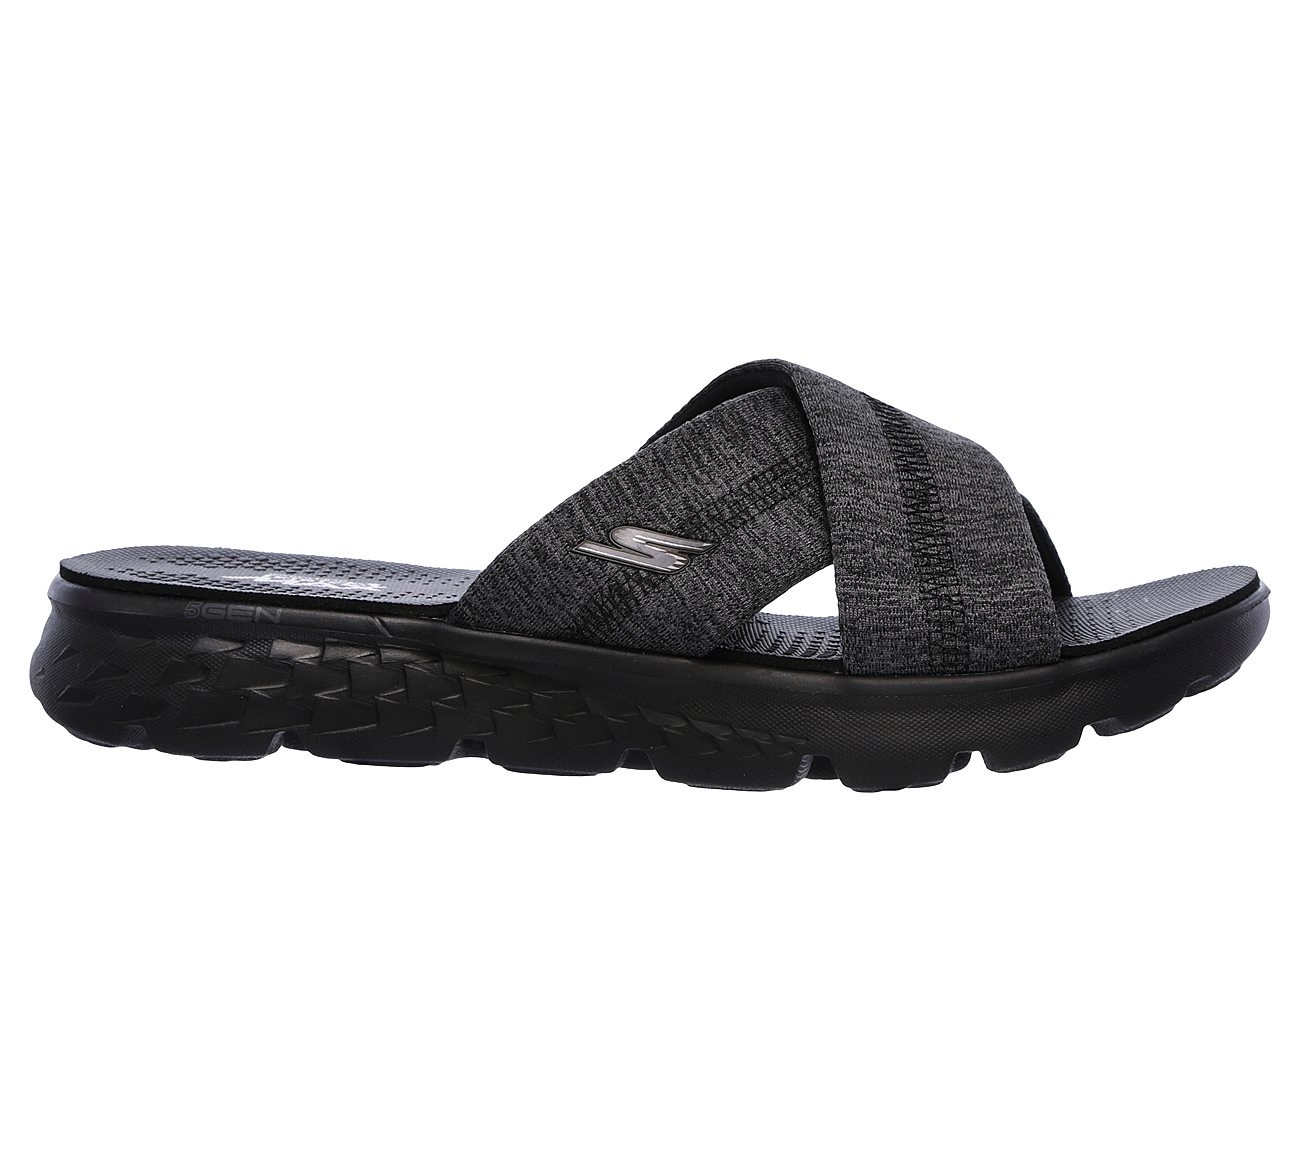 Hover to zoom. Black/Gray